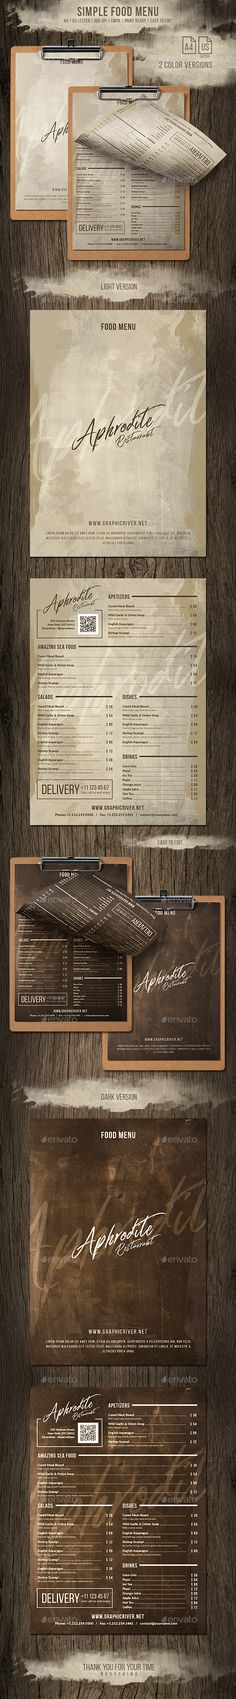 Simple Retro A4 and US Letter Menu (2 Color) — Photoshop PSD #chalkboard #restaurant • Available here → https://graphicriver.net/item/simple-retro-a4-and-us-letter-menu-2-color/20013999?ref=pxcr